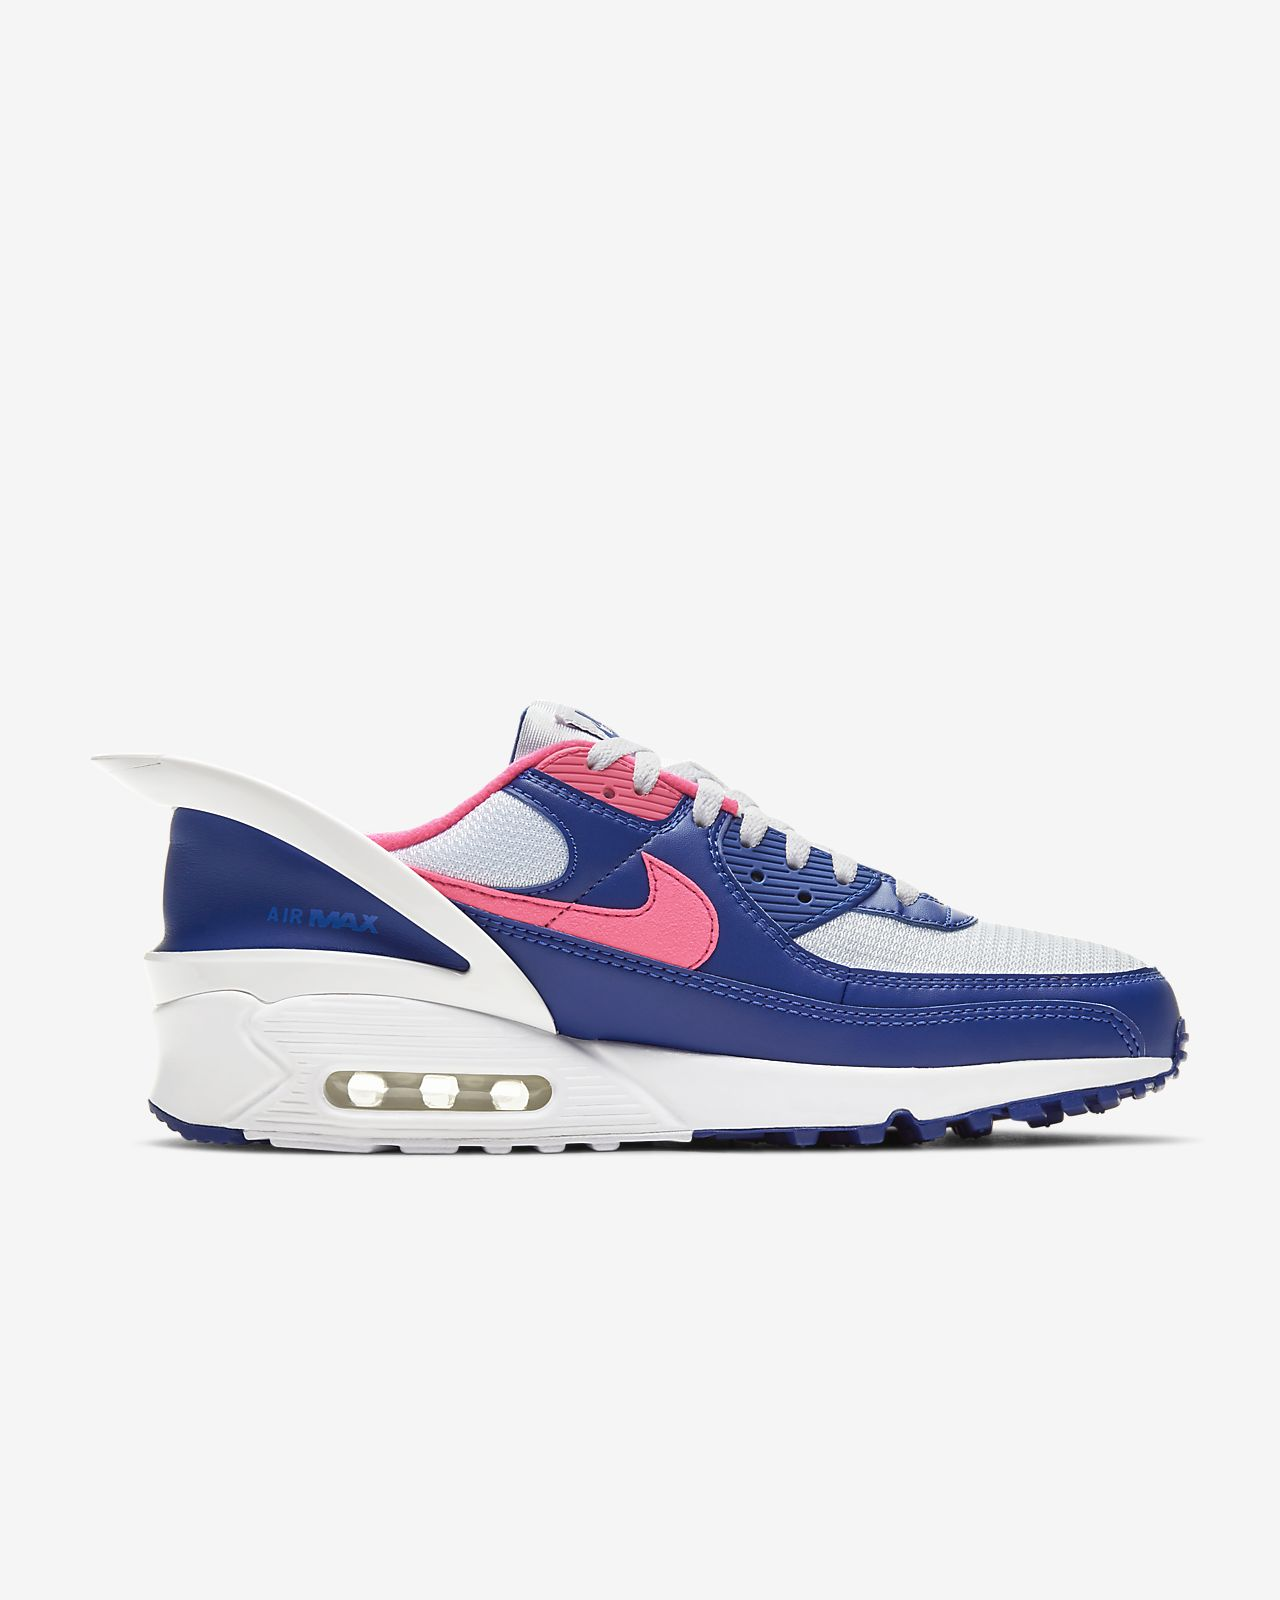 Buty Nike Air Max 90 FlyEase